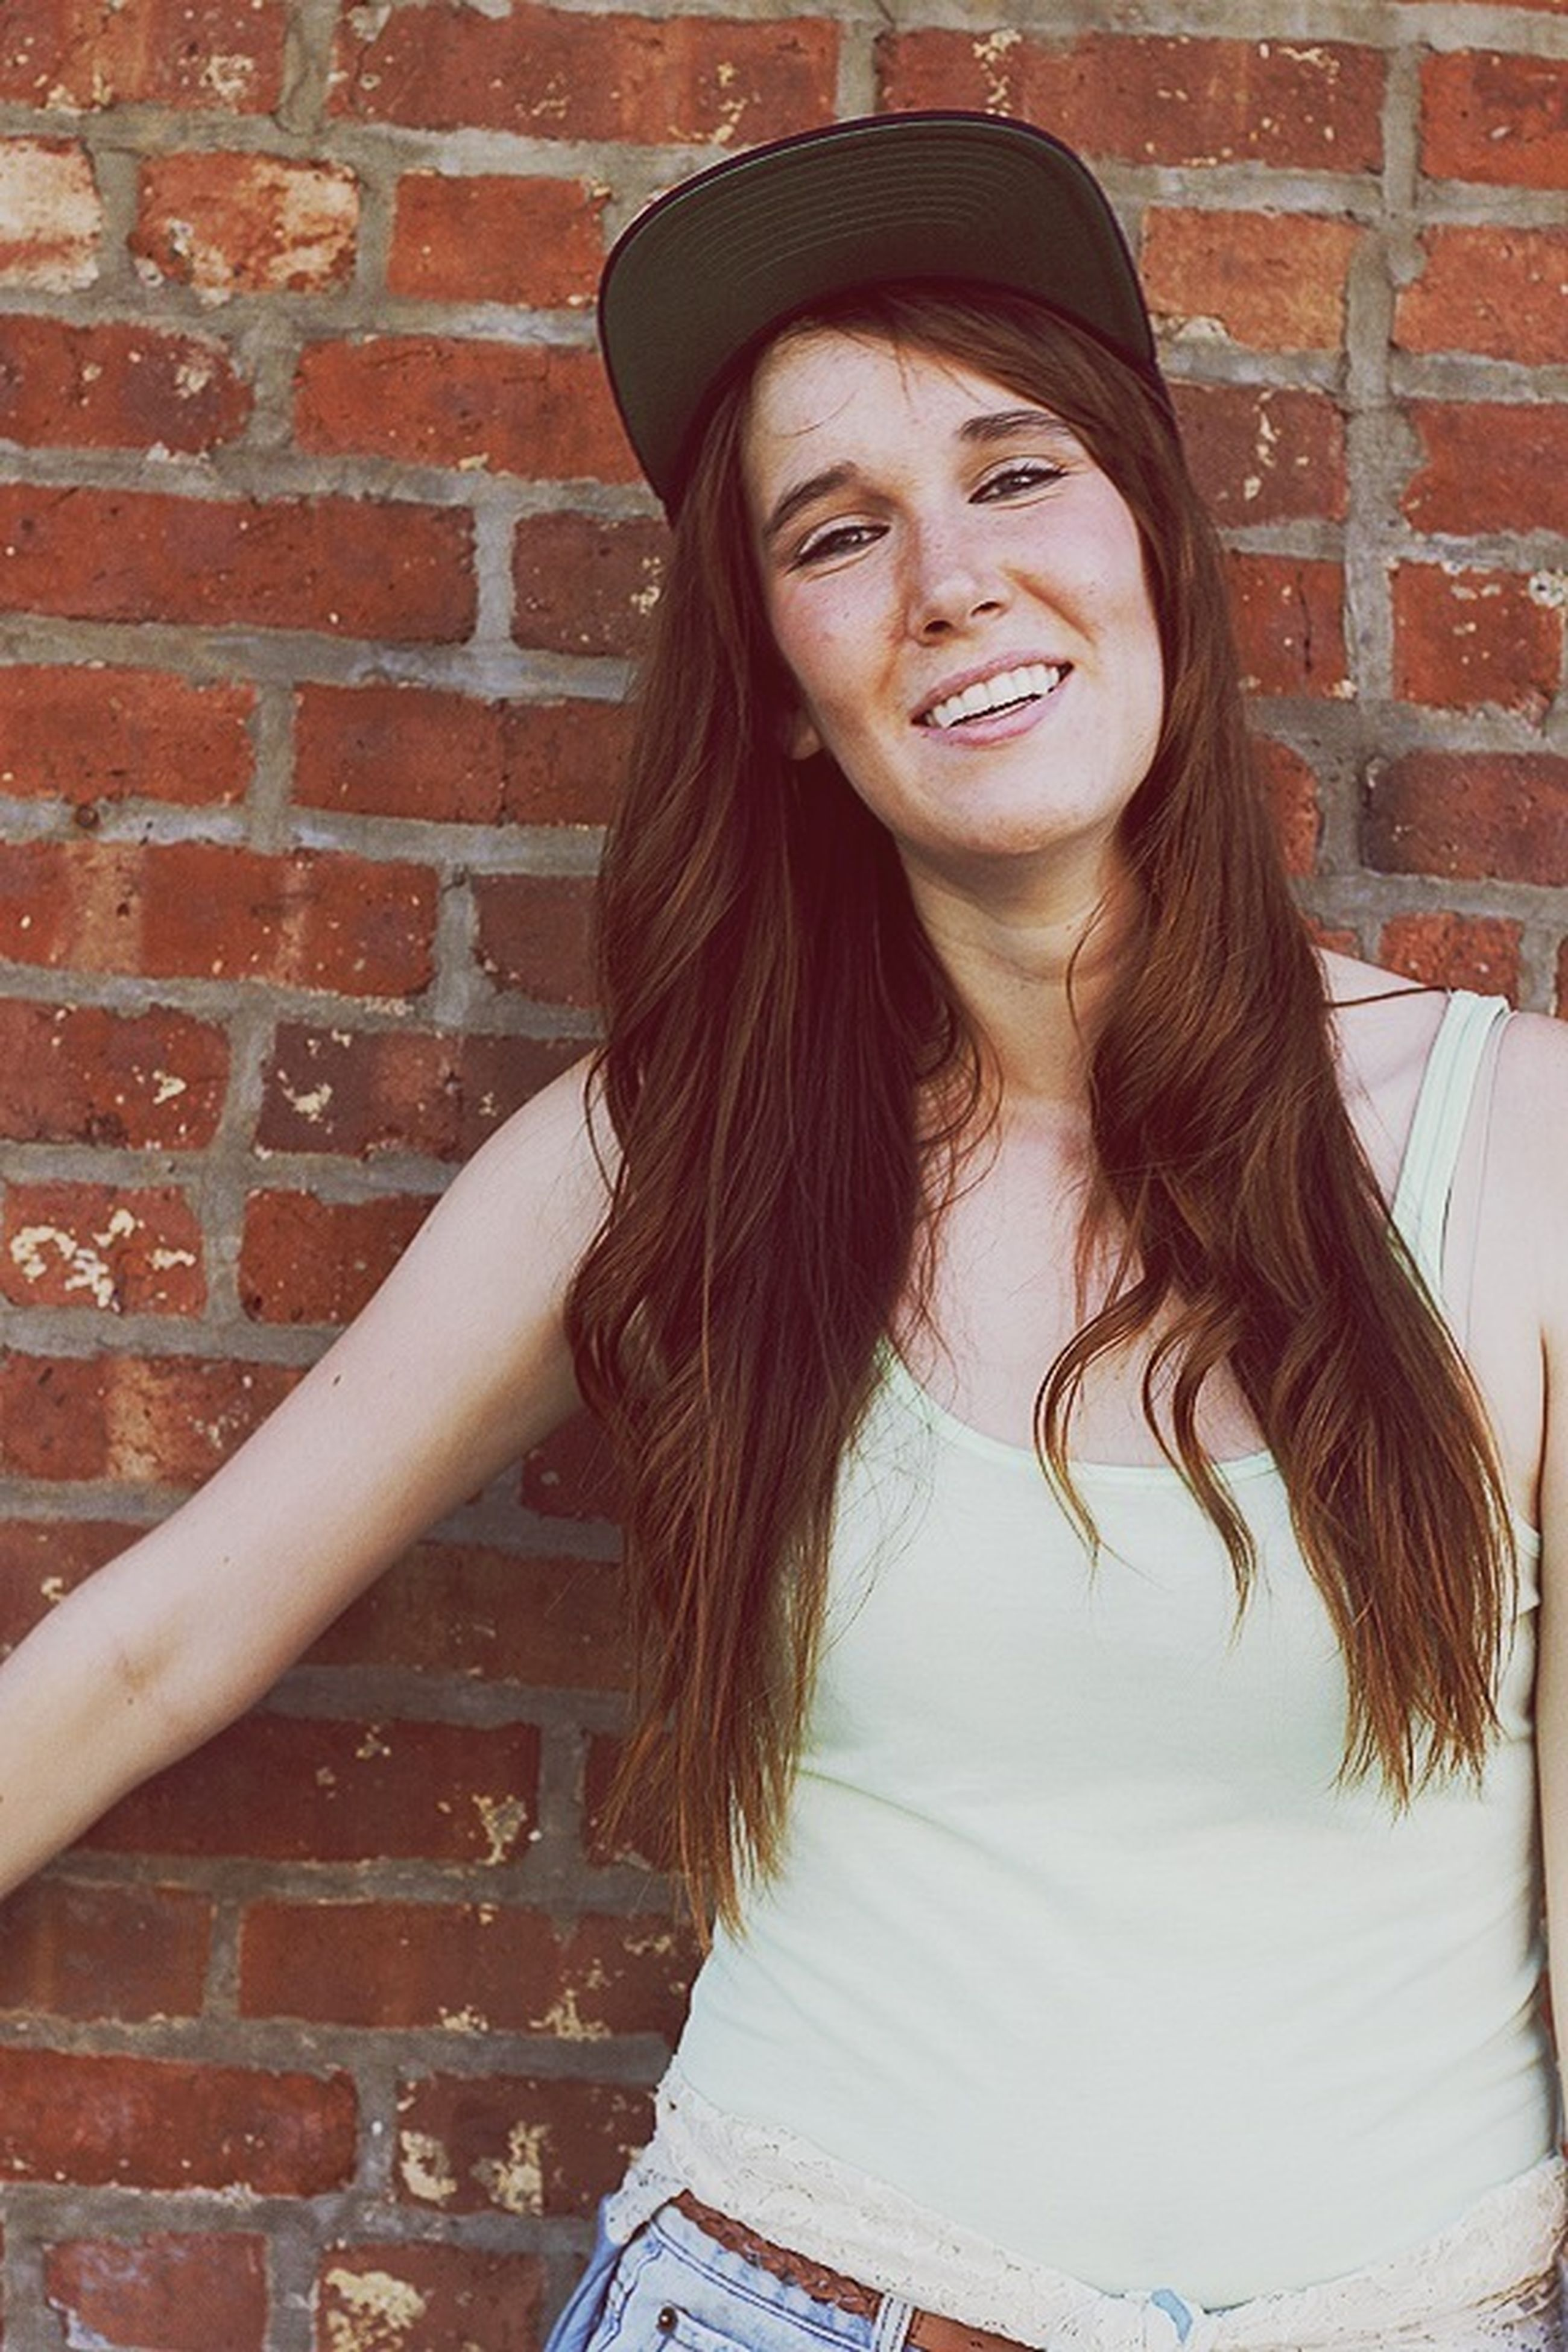 young adult, young women, long hair, portrait, looking at camera, lifestyles, person, front view, standing, casual clothing, brick wall, leisure activity, built structure, architecture, smiling, wall - building feature, beauty